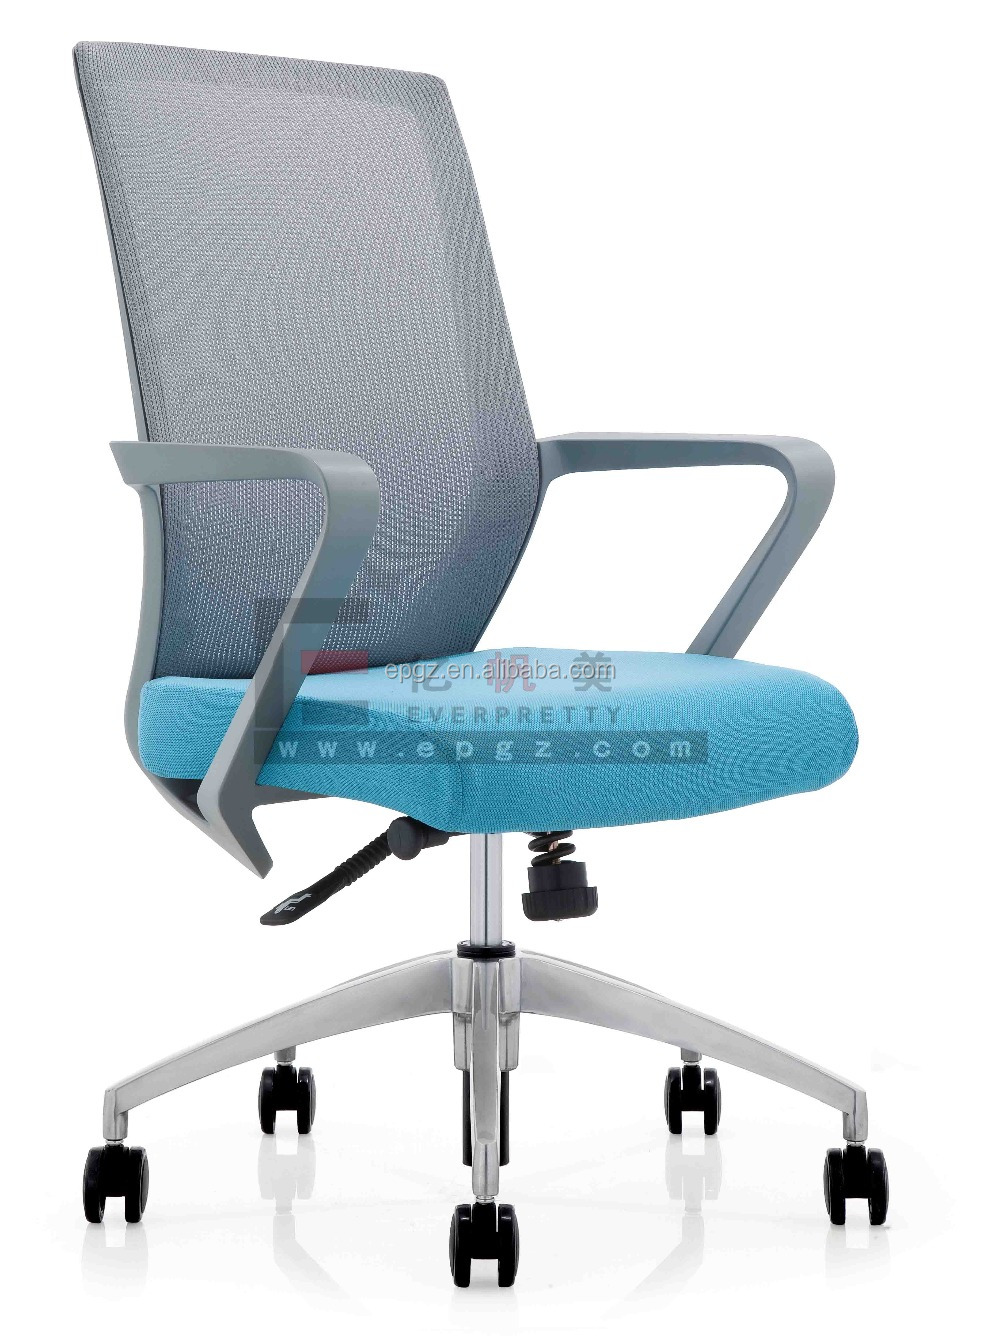 Adjustable Mesh Armrest Chair For Office